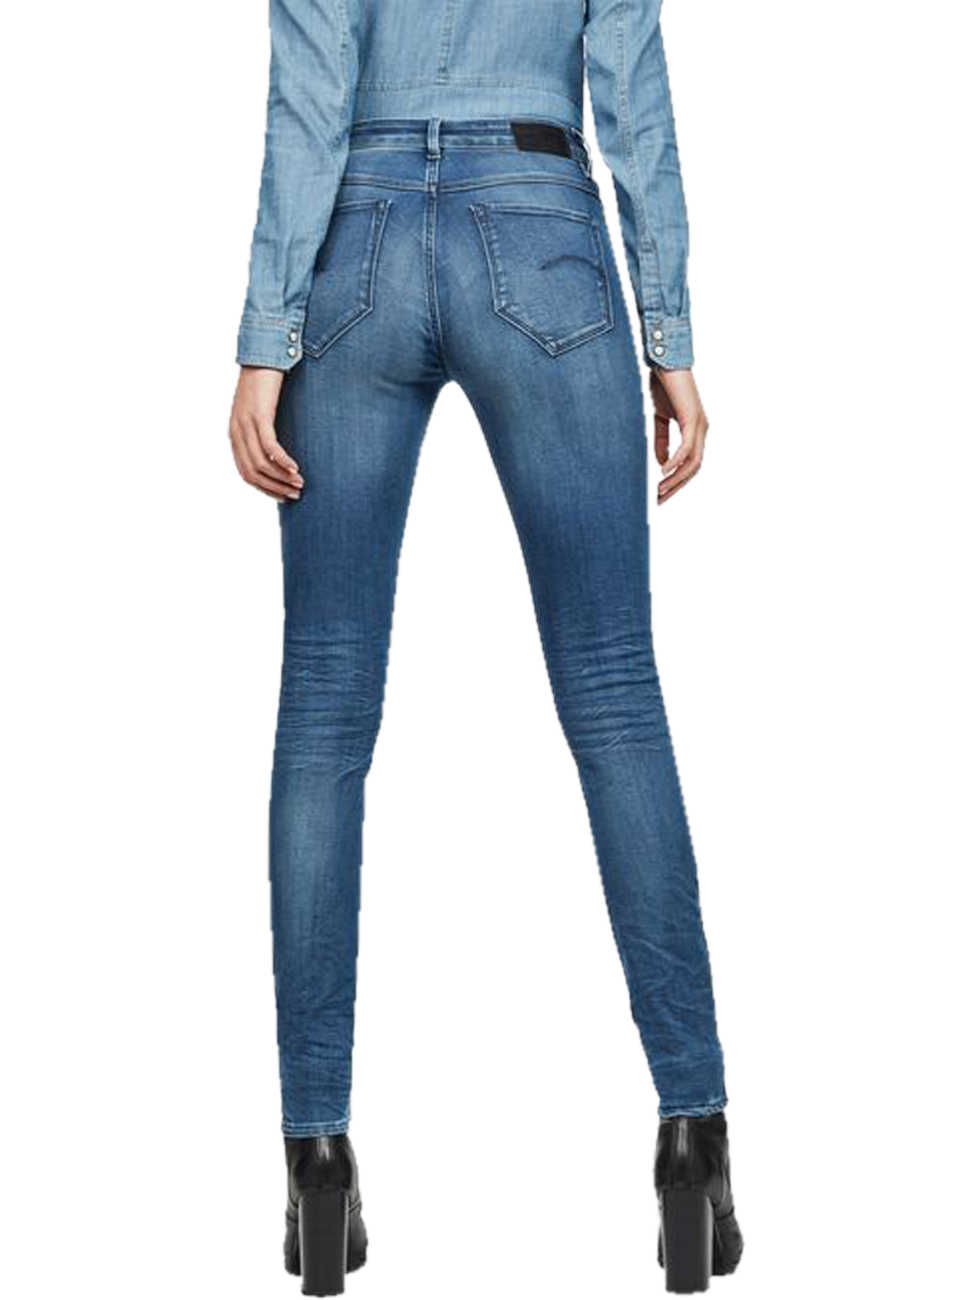 g-star-damen-jeans-shape-high-super-skinny-blau-medium-aged, 139.95 EUR @ jeans